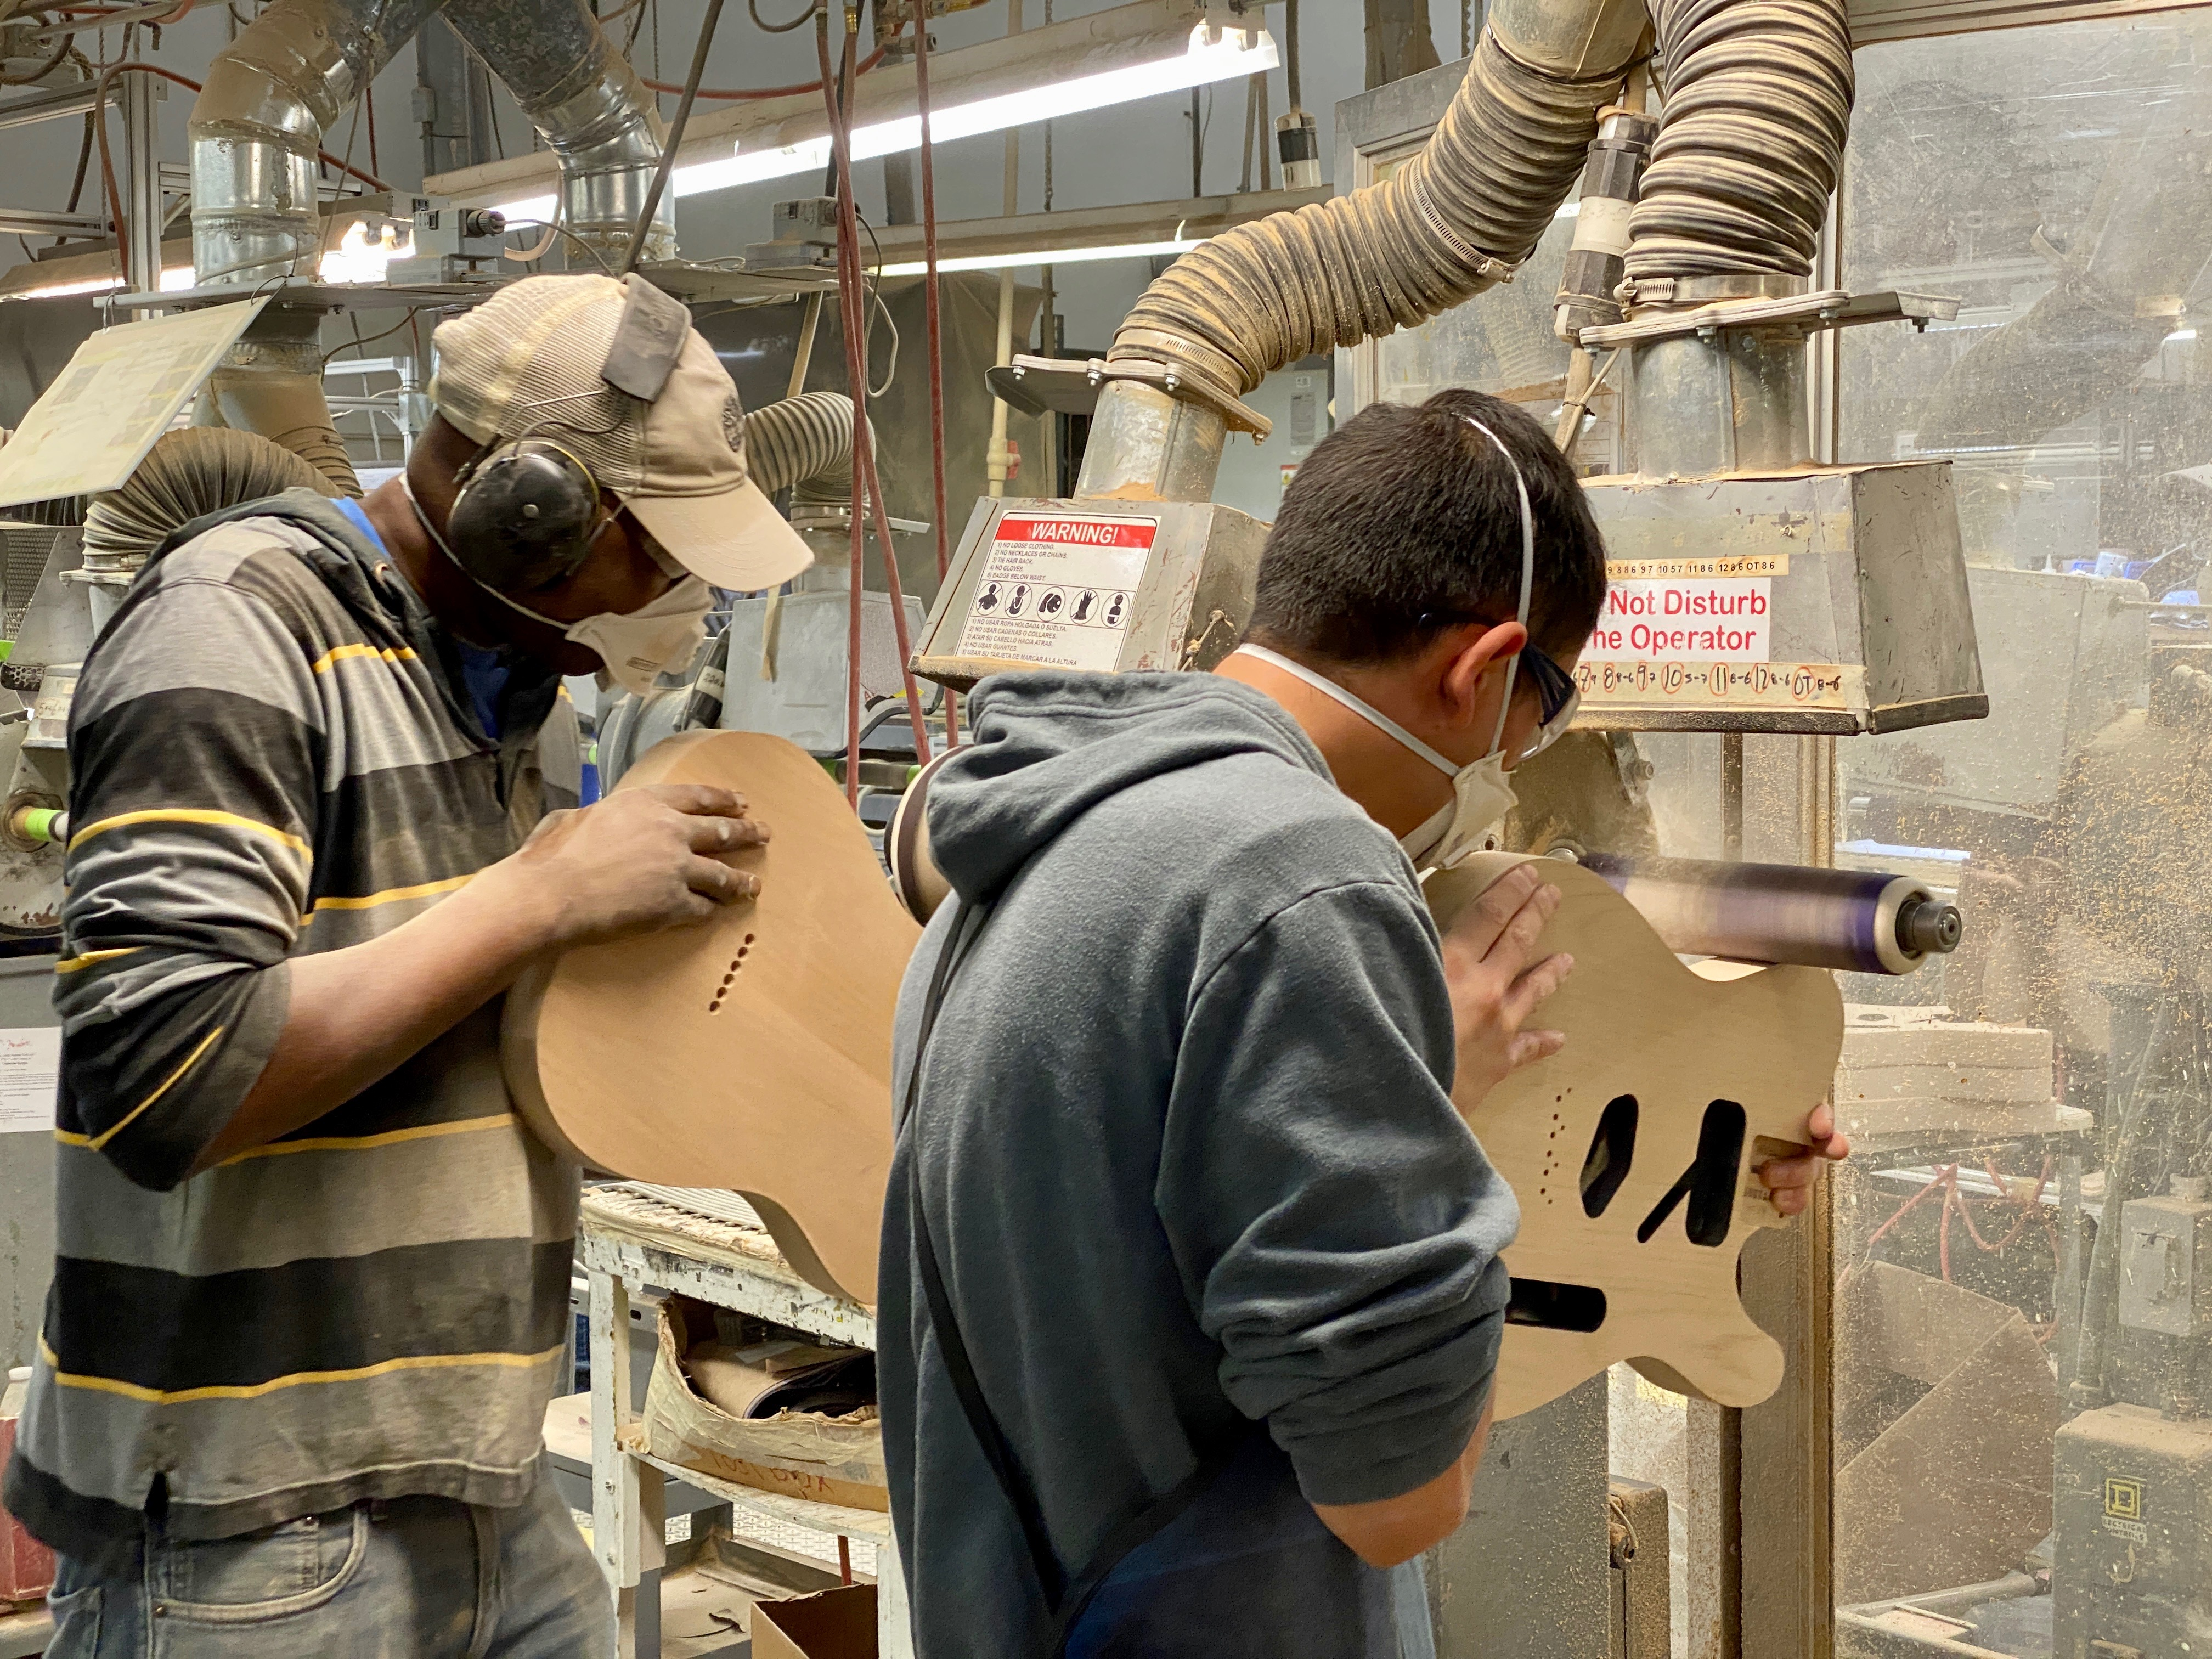 Workers sanding guitar bodies at the Fender plant.